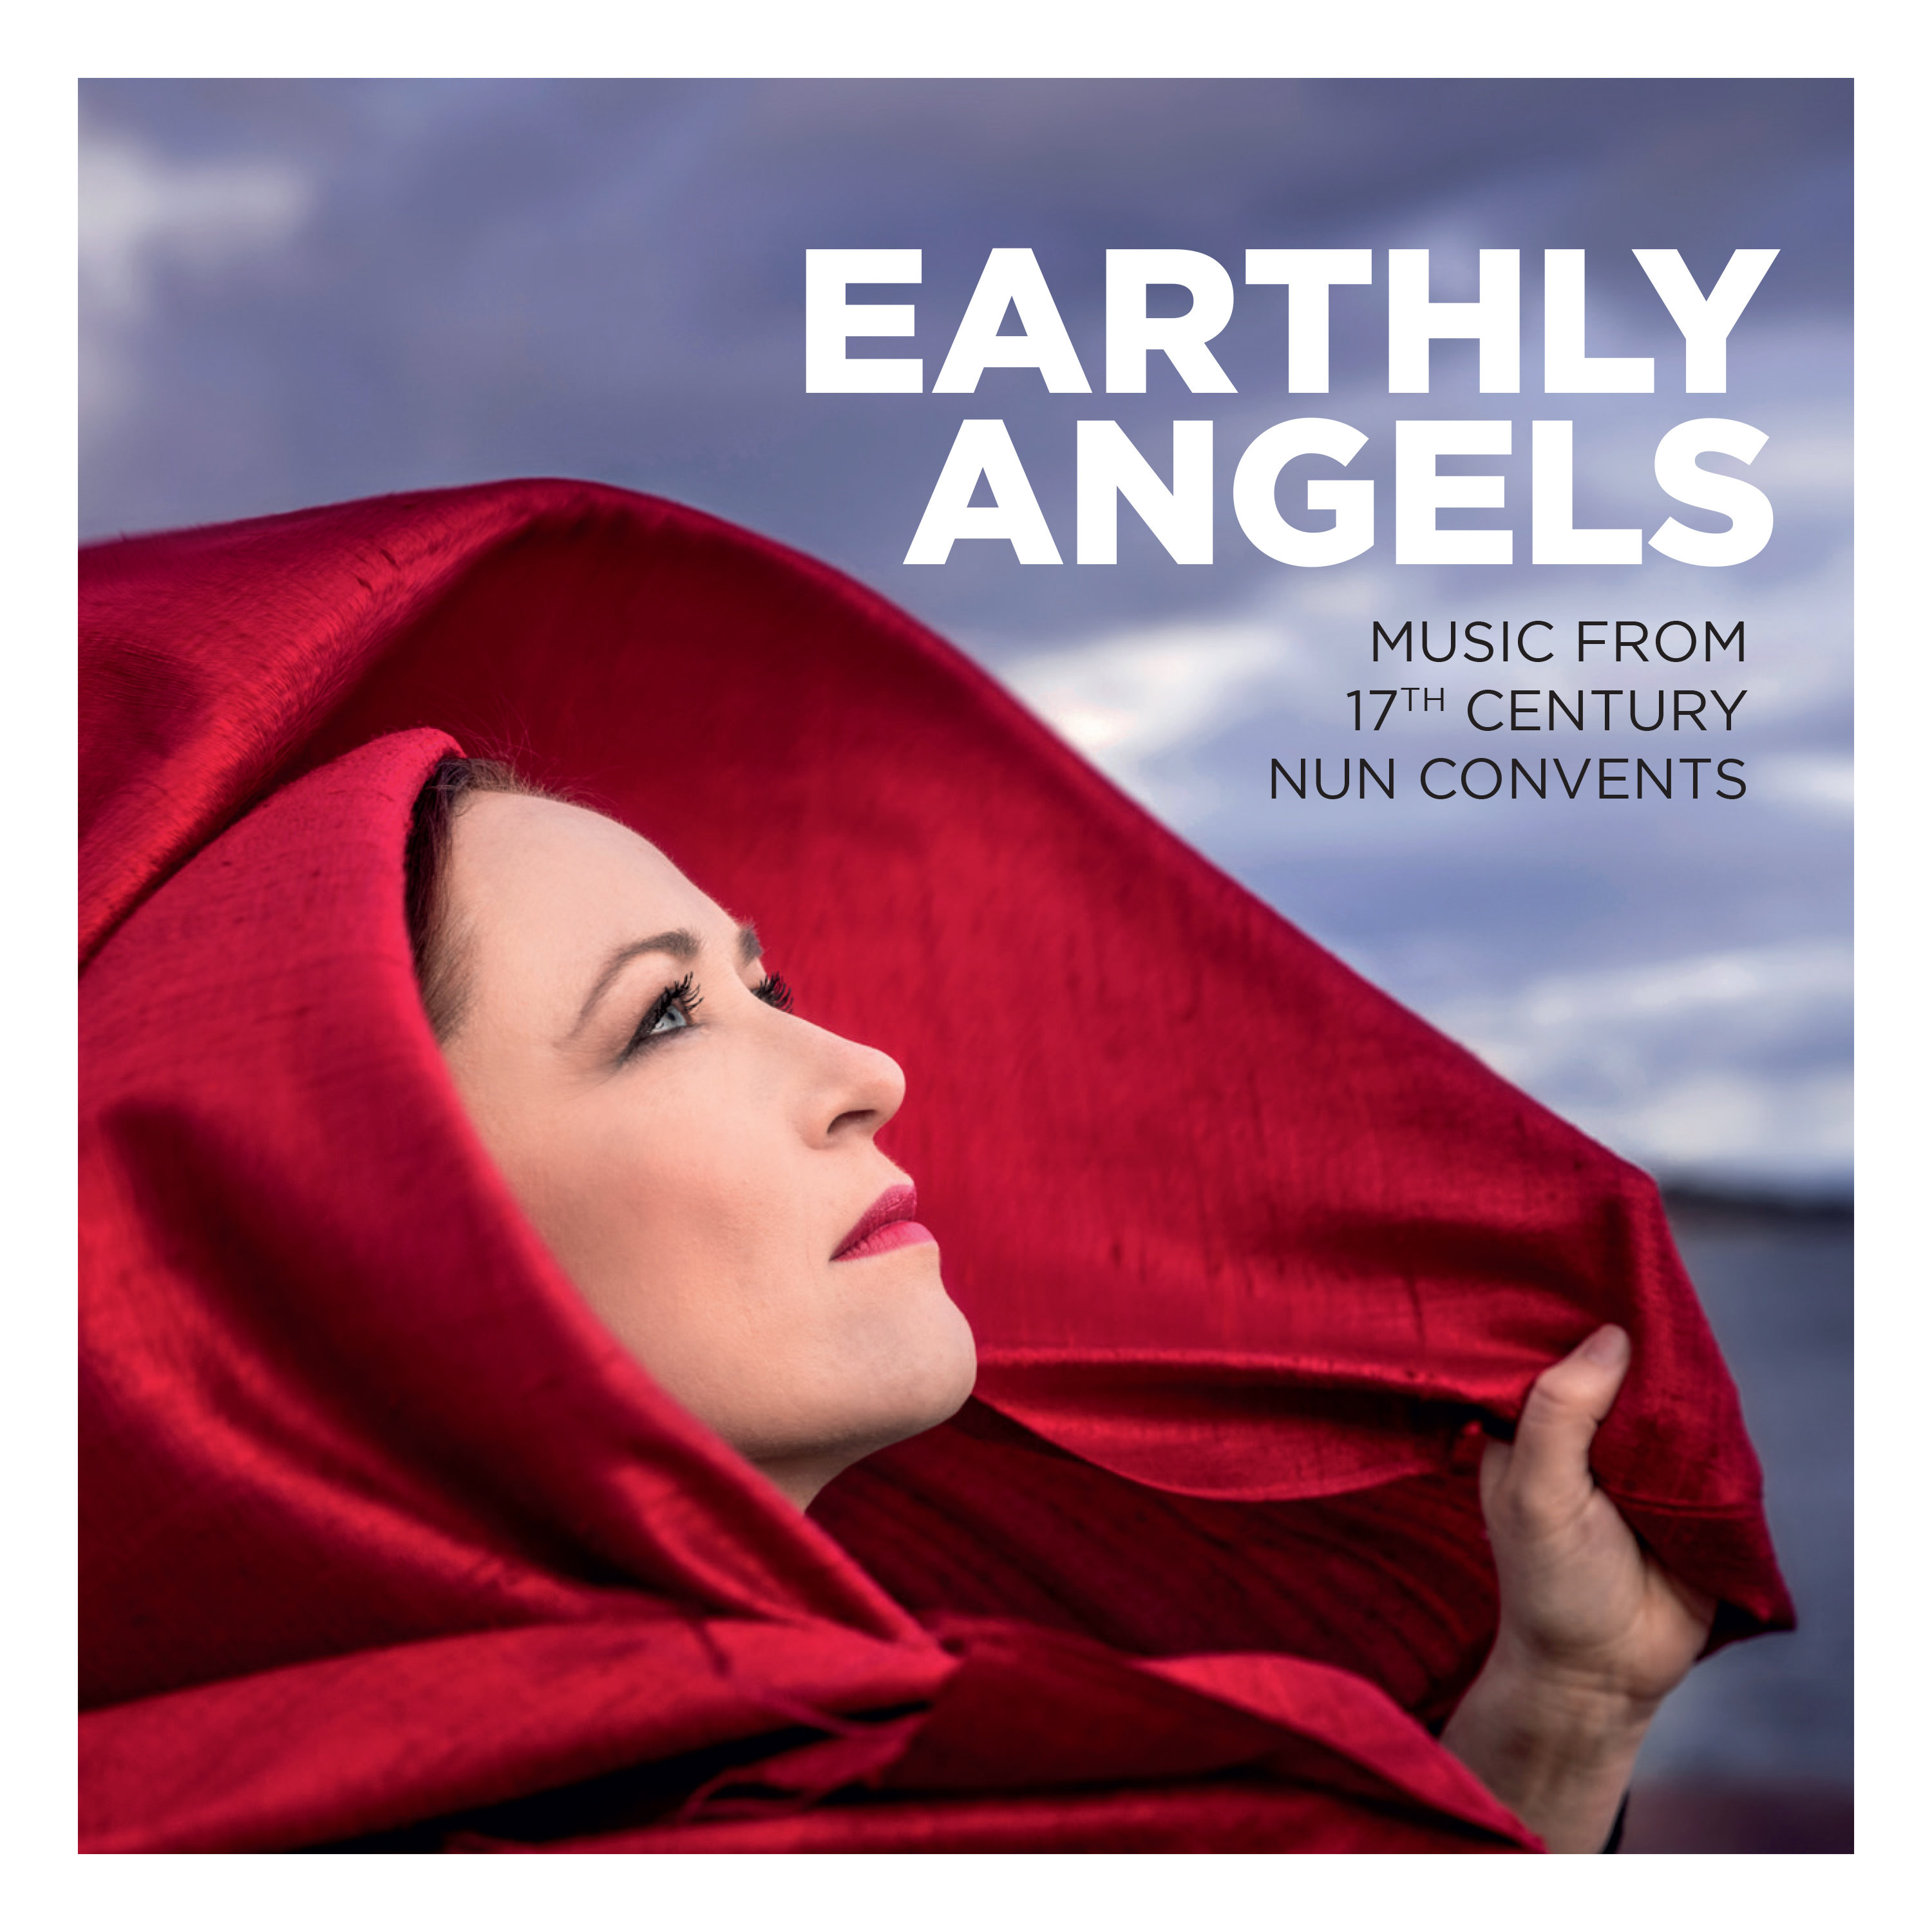 Earthly Angels / Music from 17th Century Nun Convents